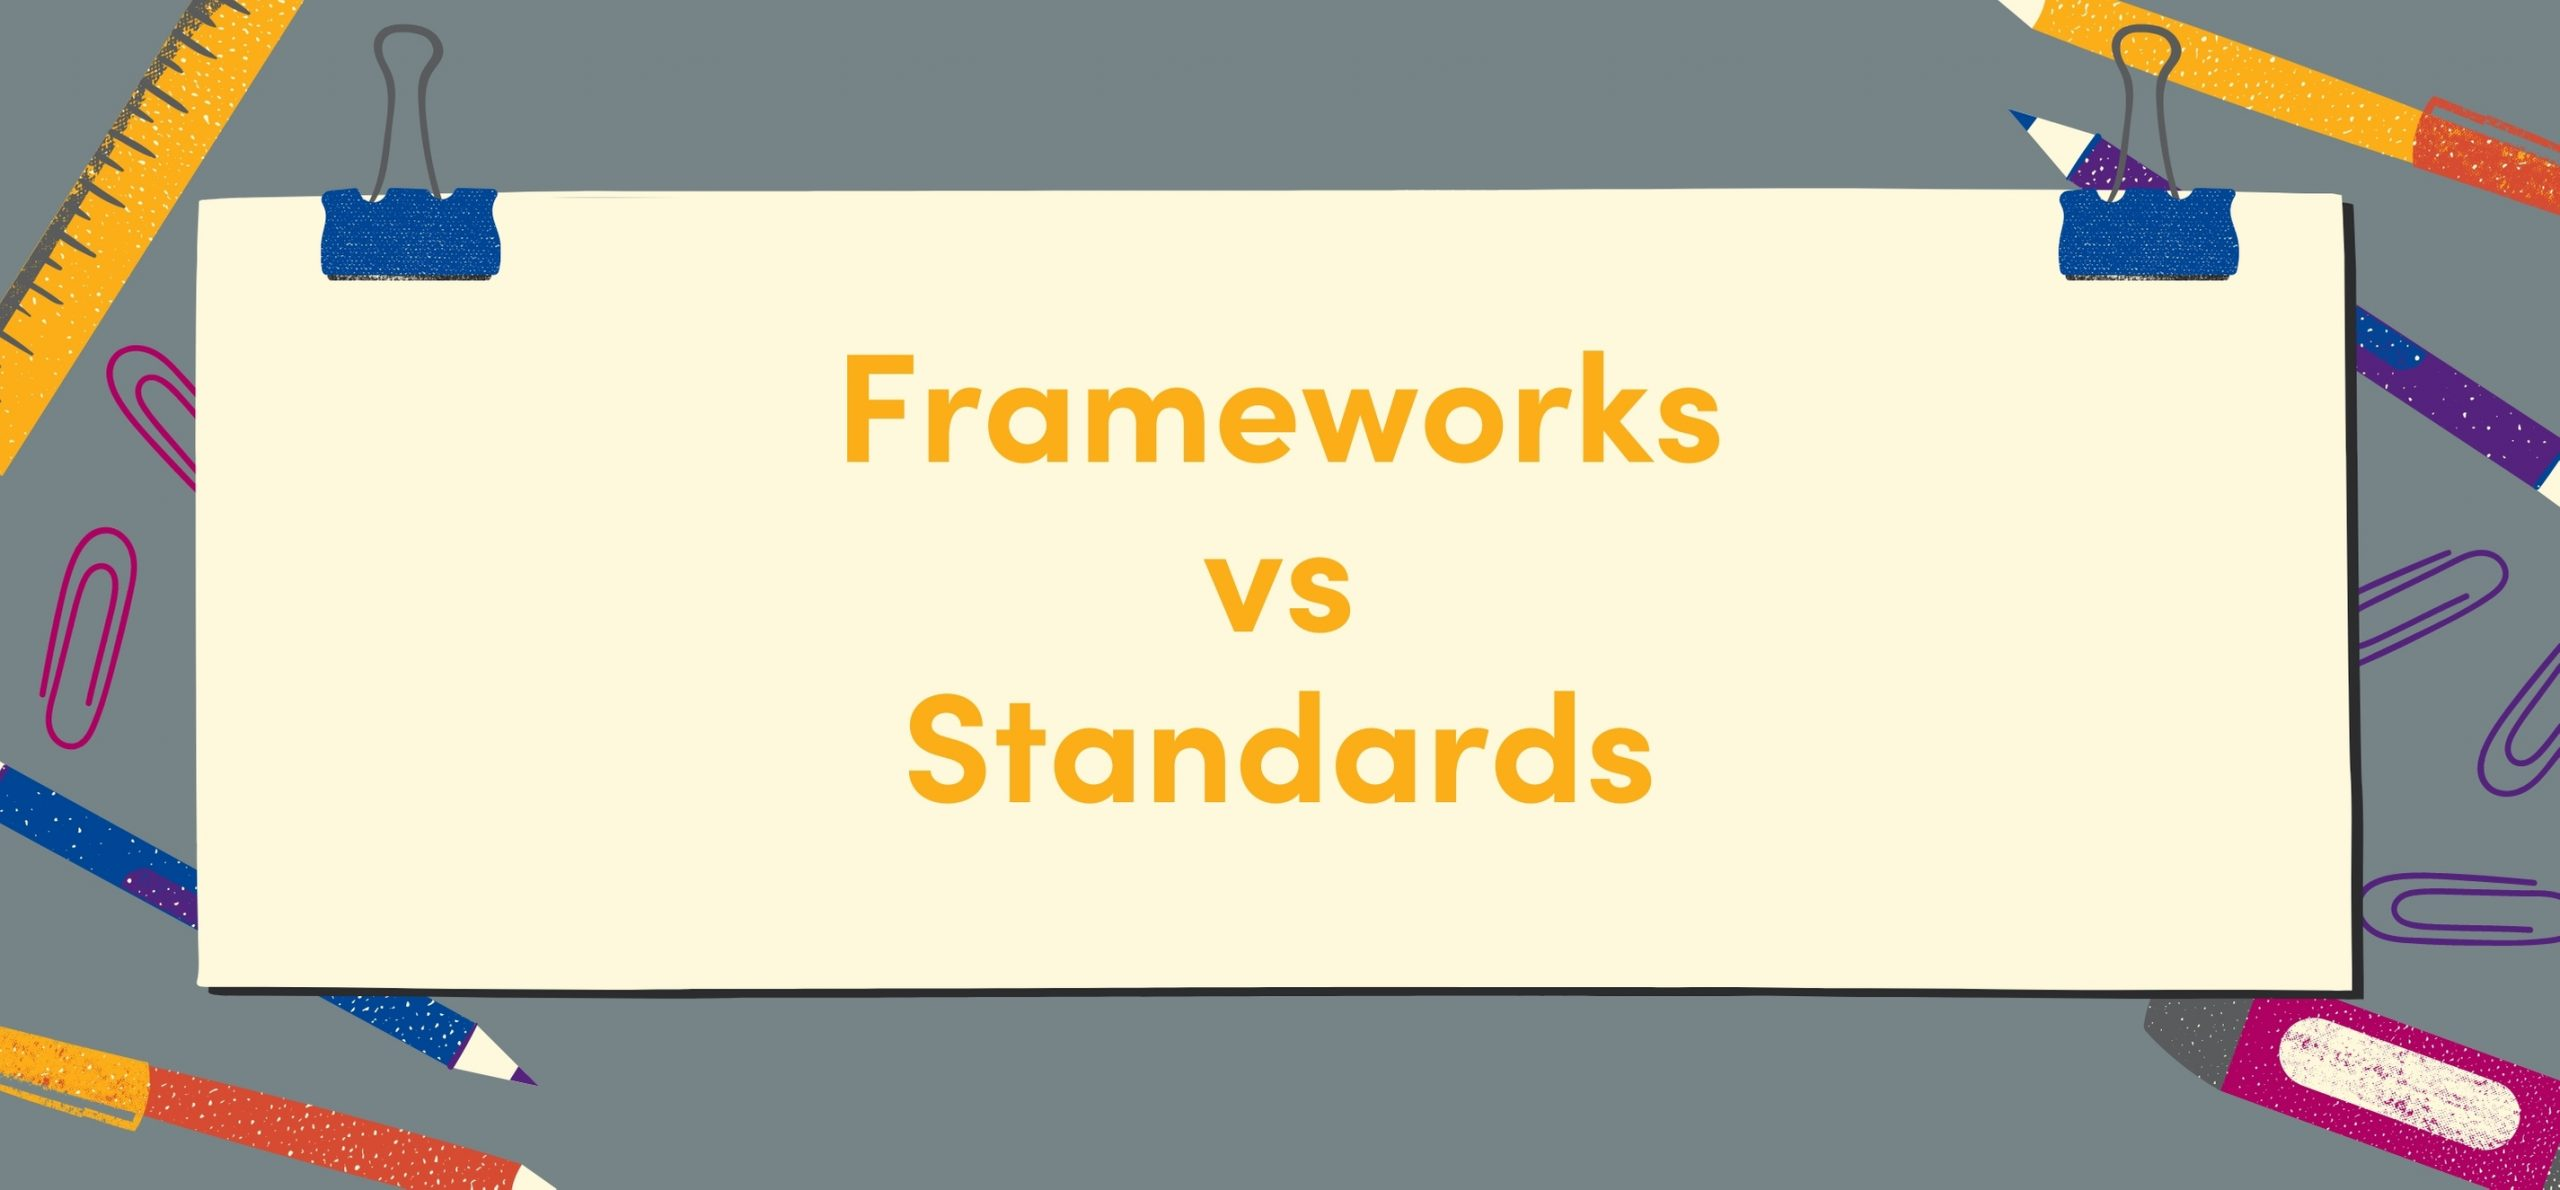 Frameworks vs Standards